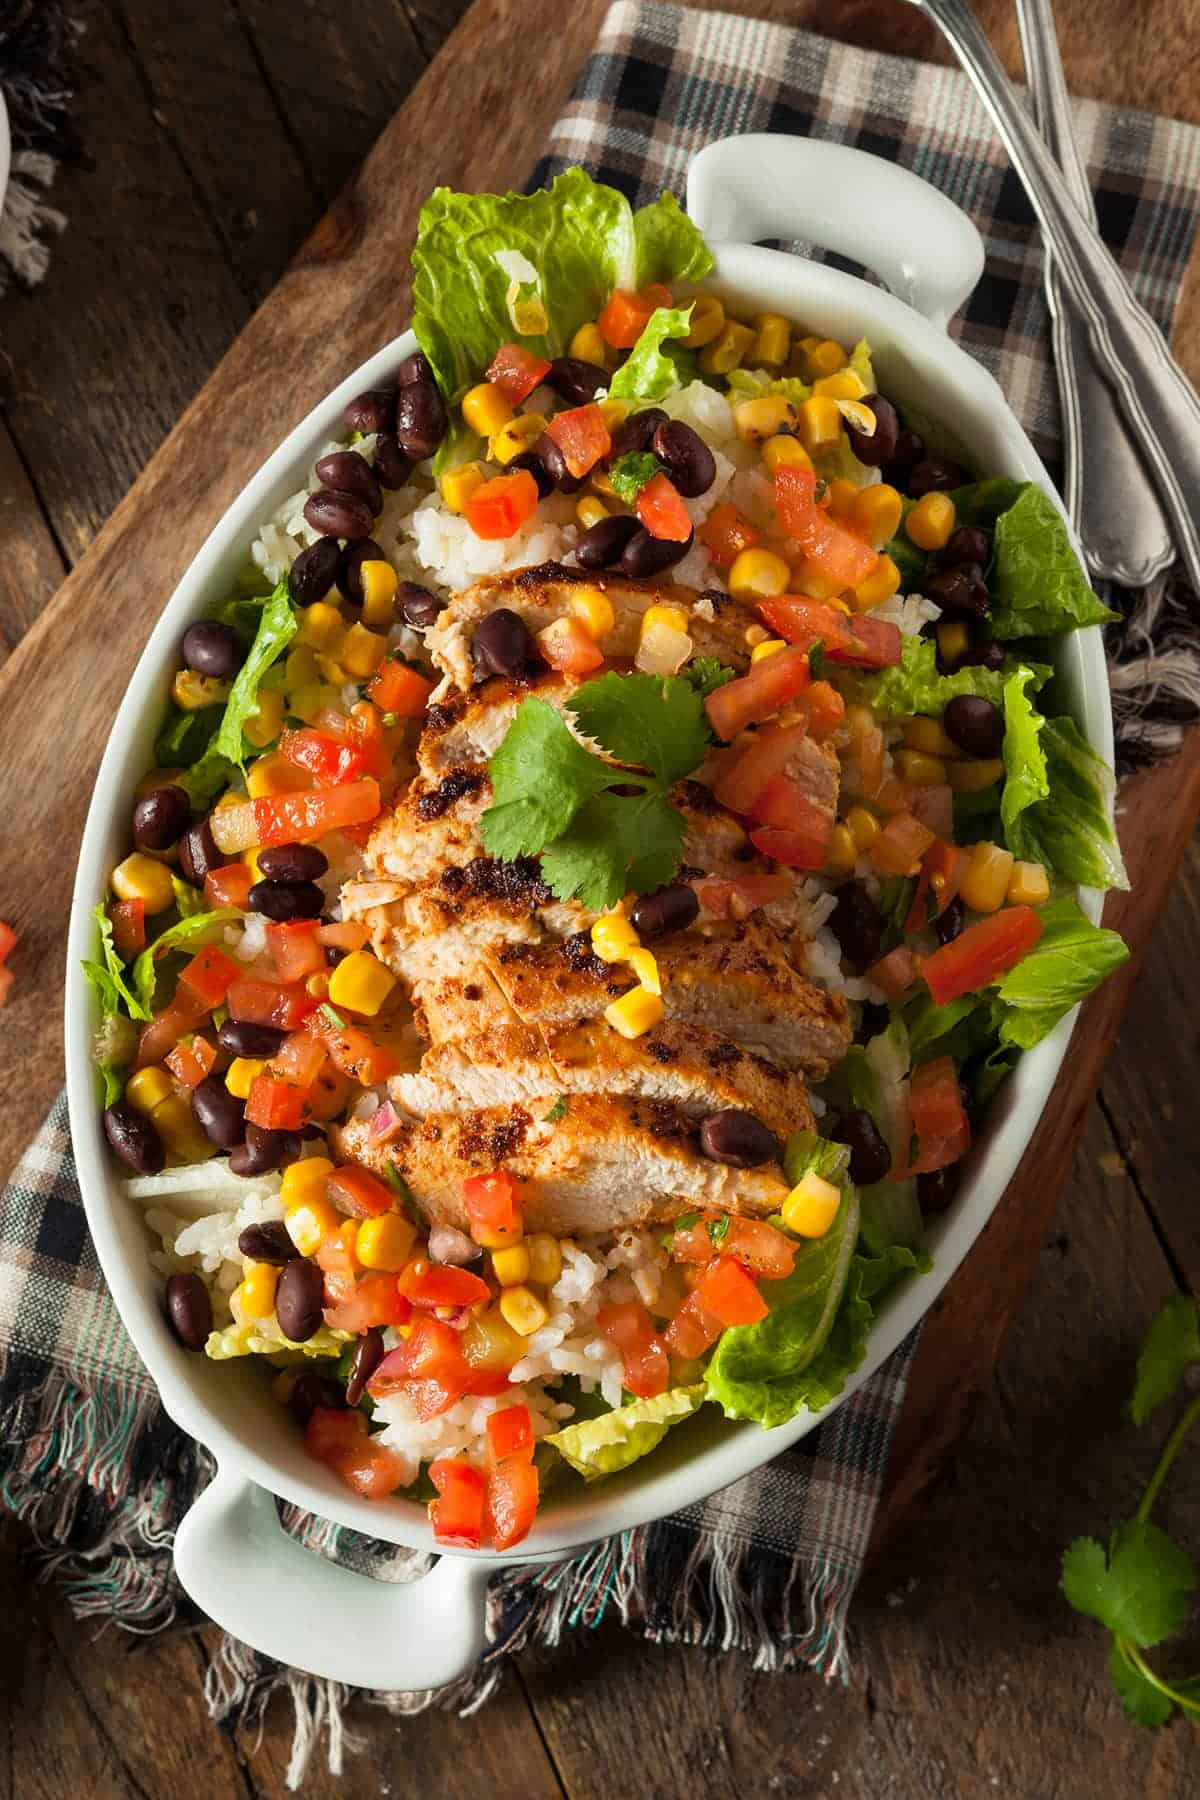 Chicken burrito topping ideas including tomatoes, corn, black beans, lettuce, rice, and sauce.